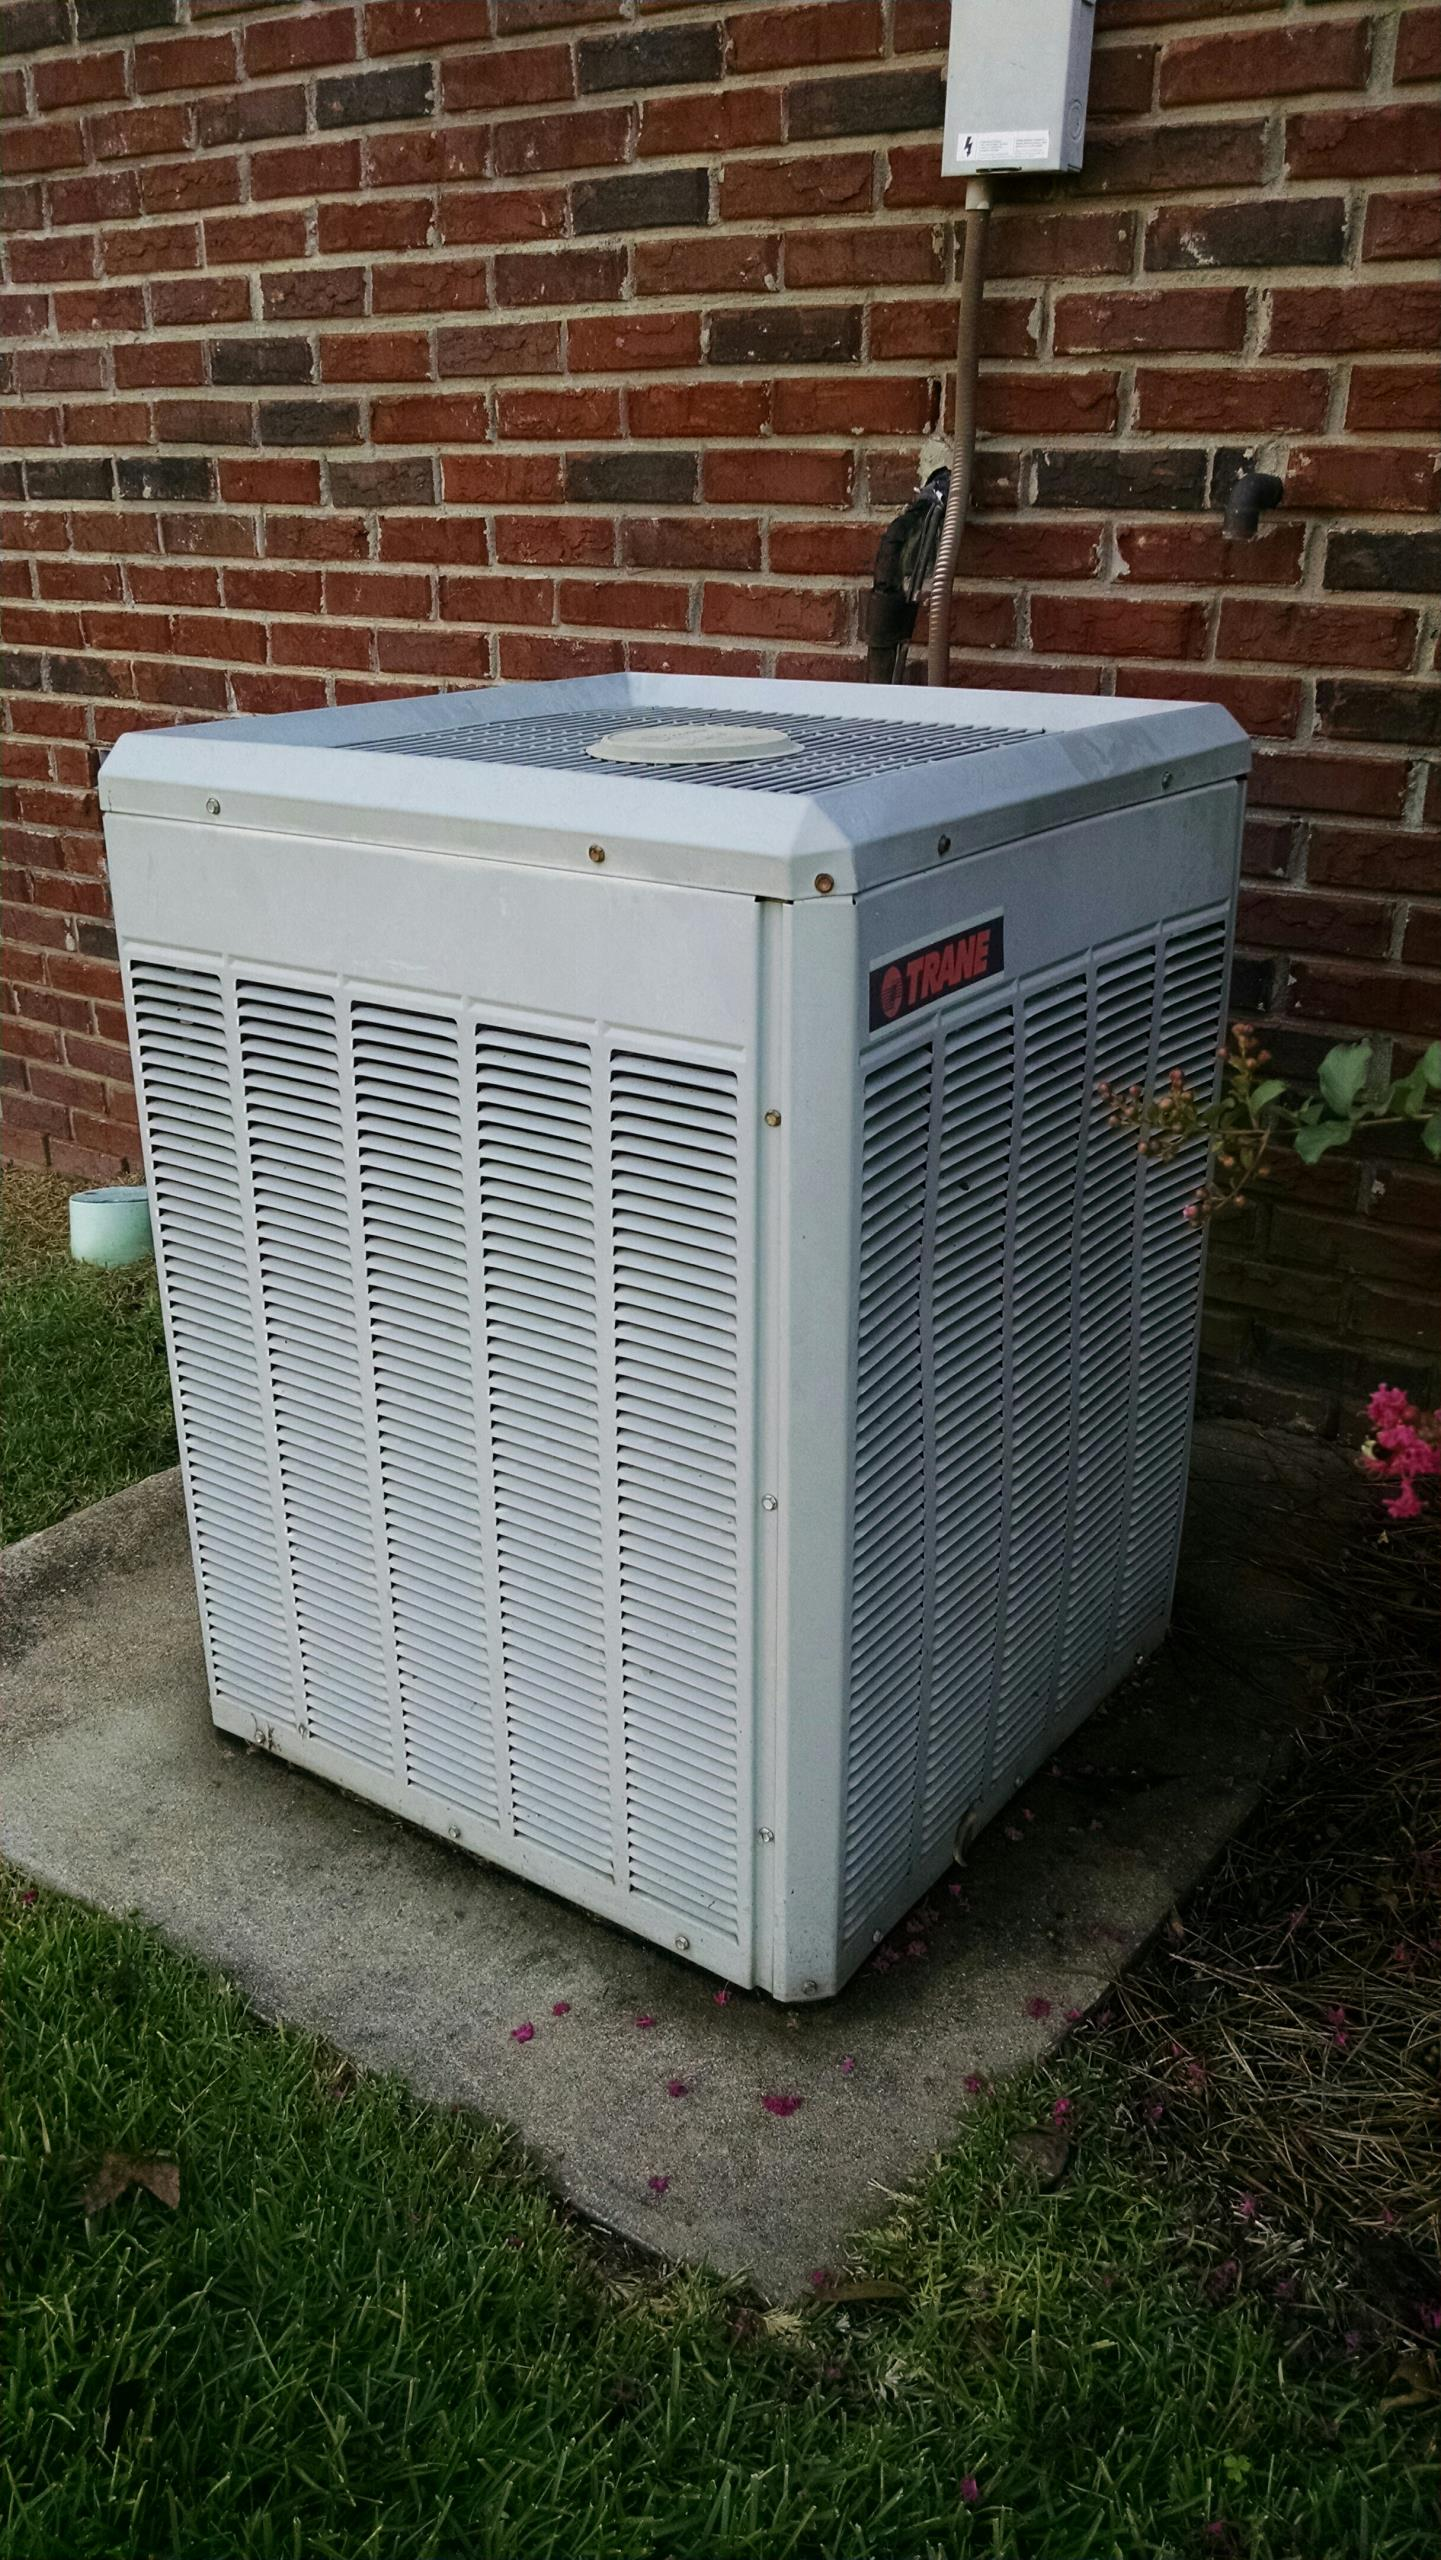 Millbrook, AL - Fall inspection on 18 yr old Trane air conditioner R22 system.